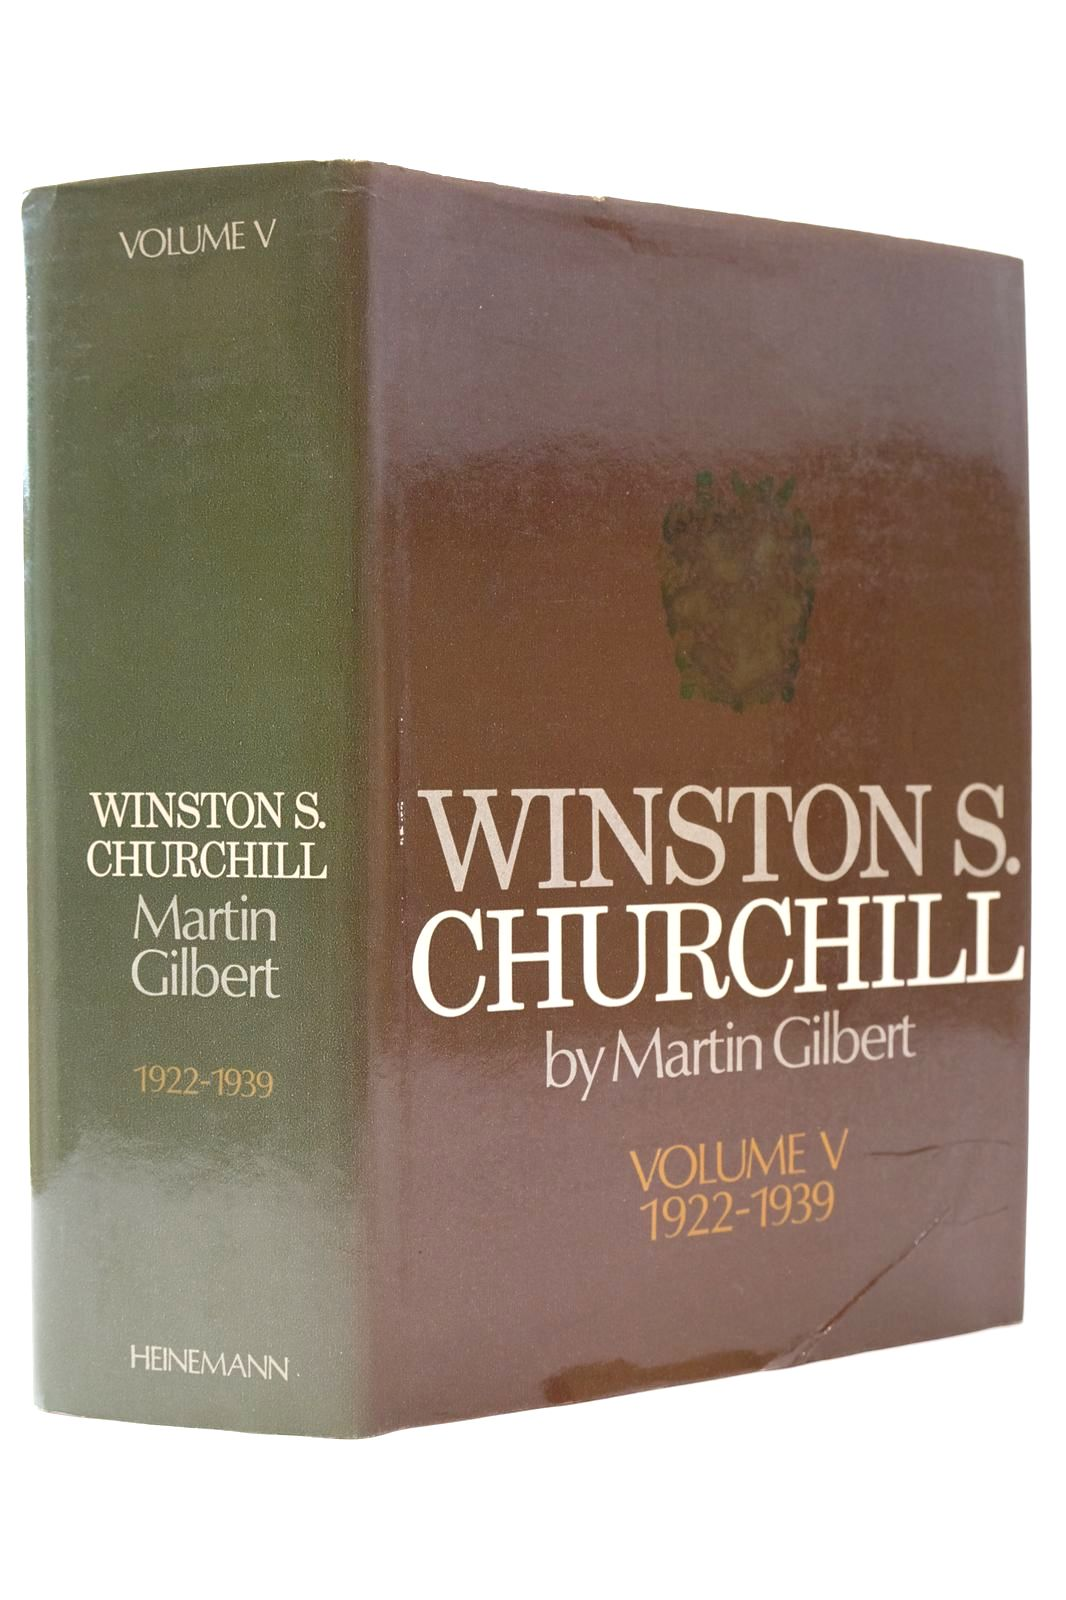 Photo of WINSTON S. CHURCHILL VOLUME V 1922-1939 written by Gilbert, Martin published by Heinemann (STOCK CODE: 2132687)  for sale by Stella & Rose's Books